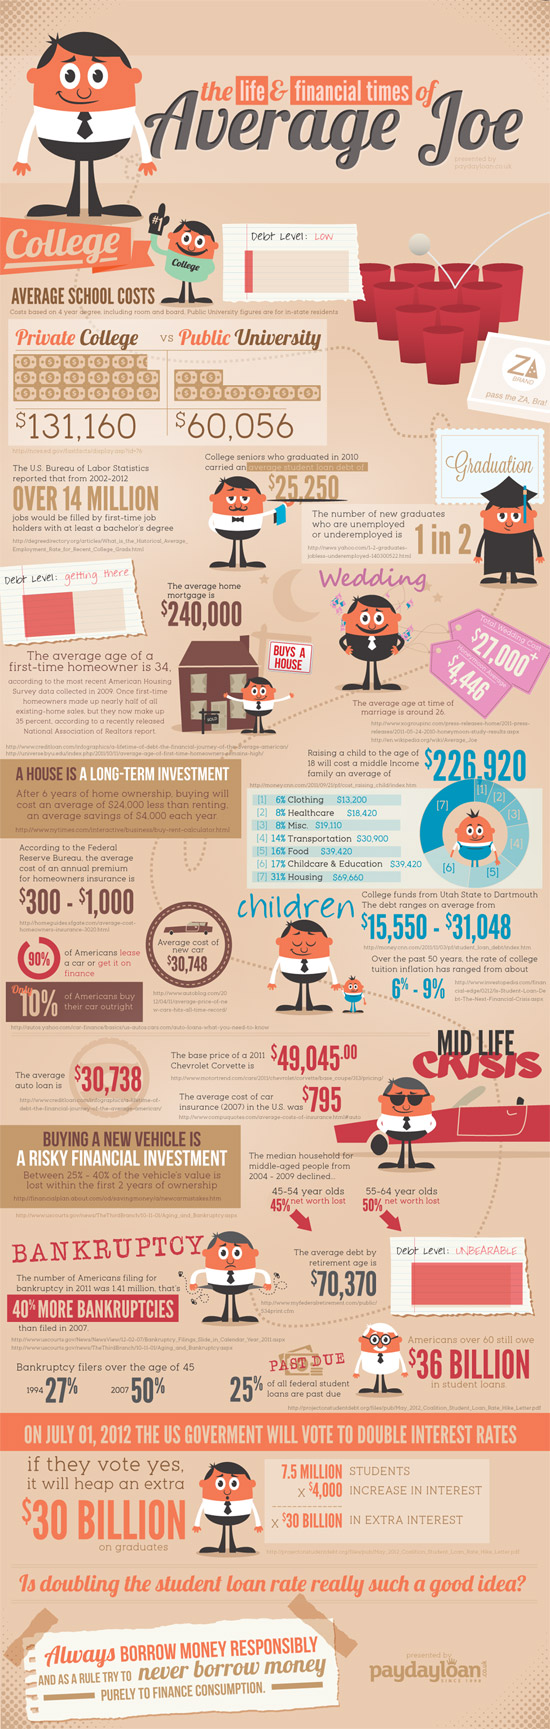 The Life and Financial Times of the Average Joe